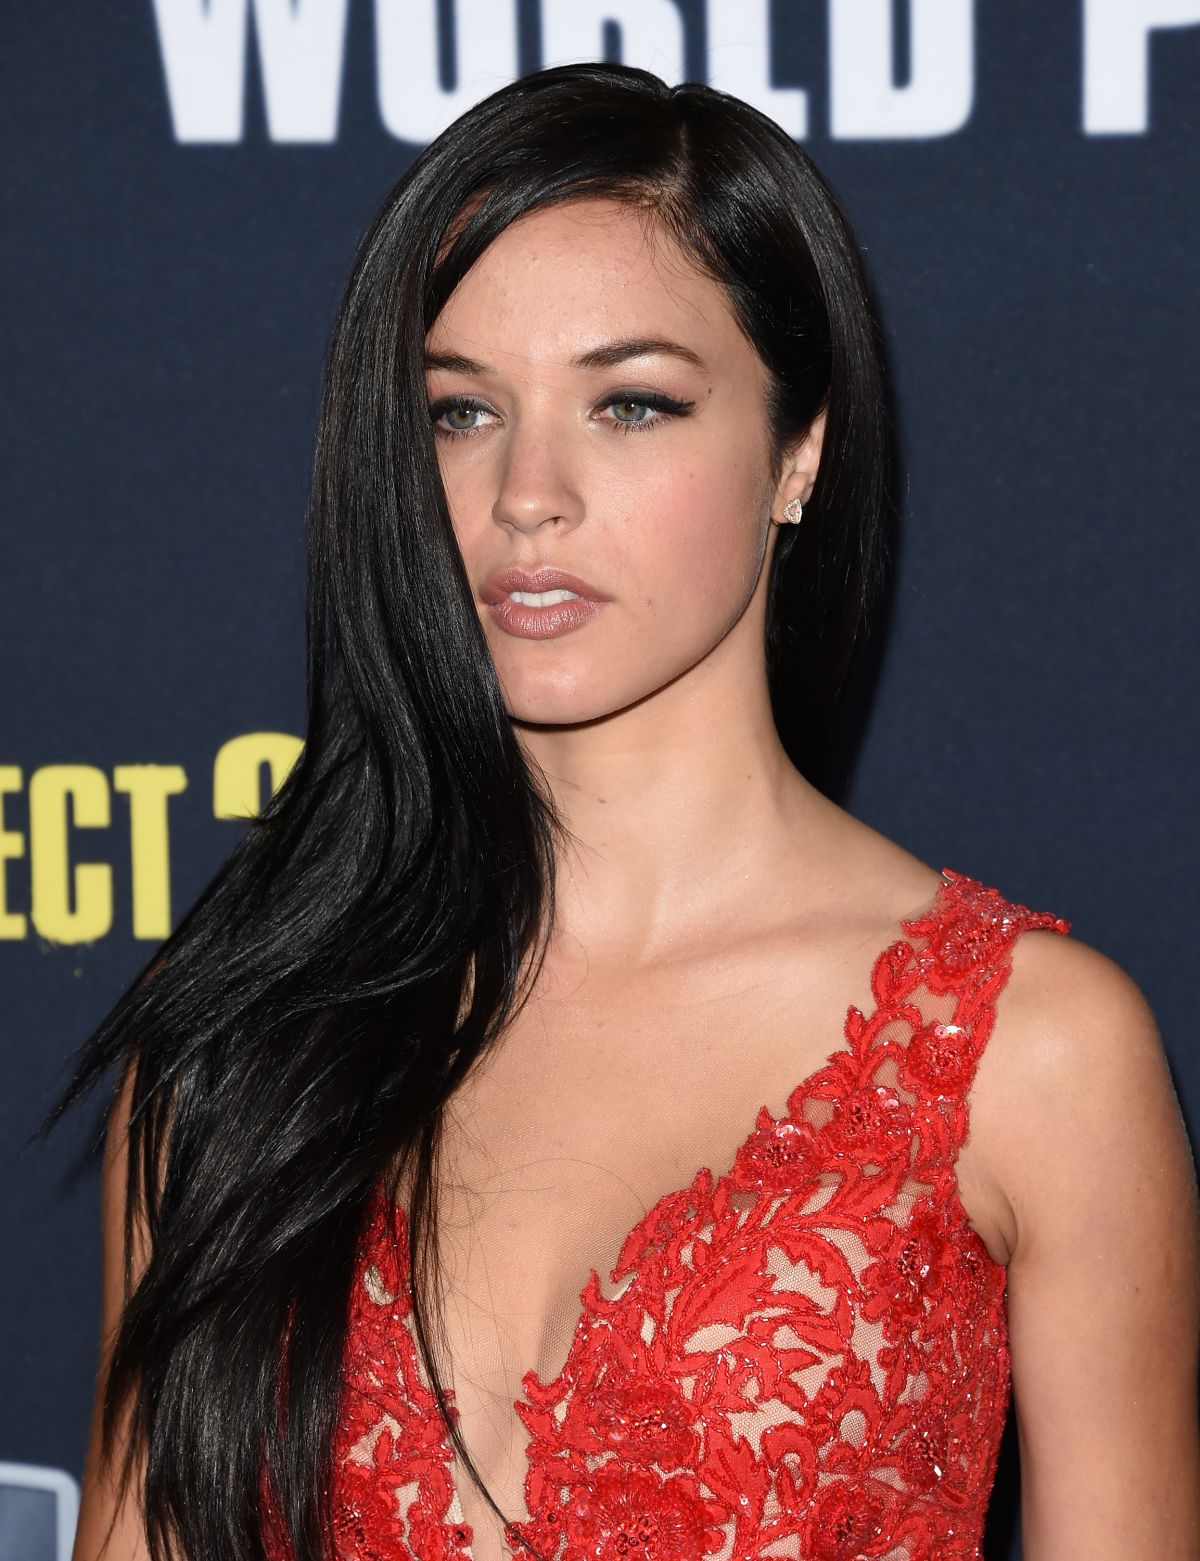 49 Hottest Alexis Knapp Bikini Pictures Will Inspire You